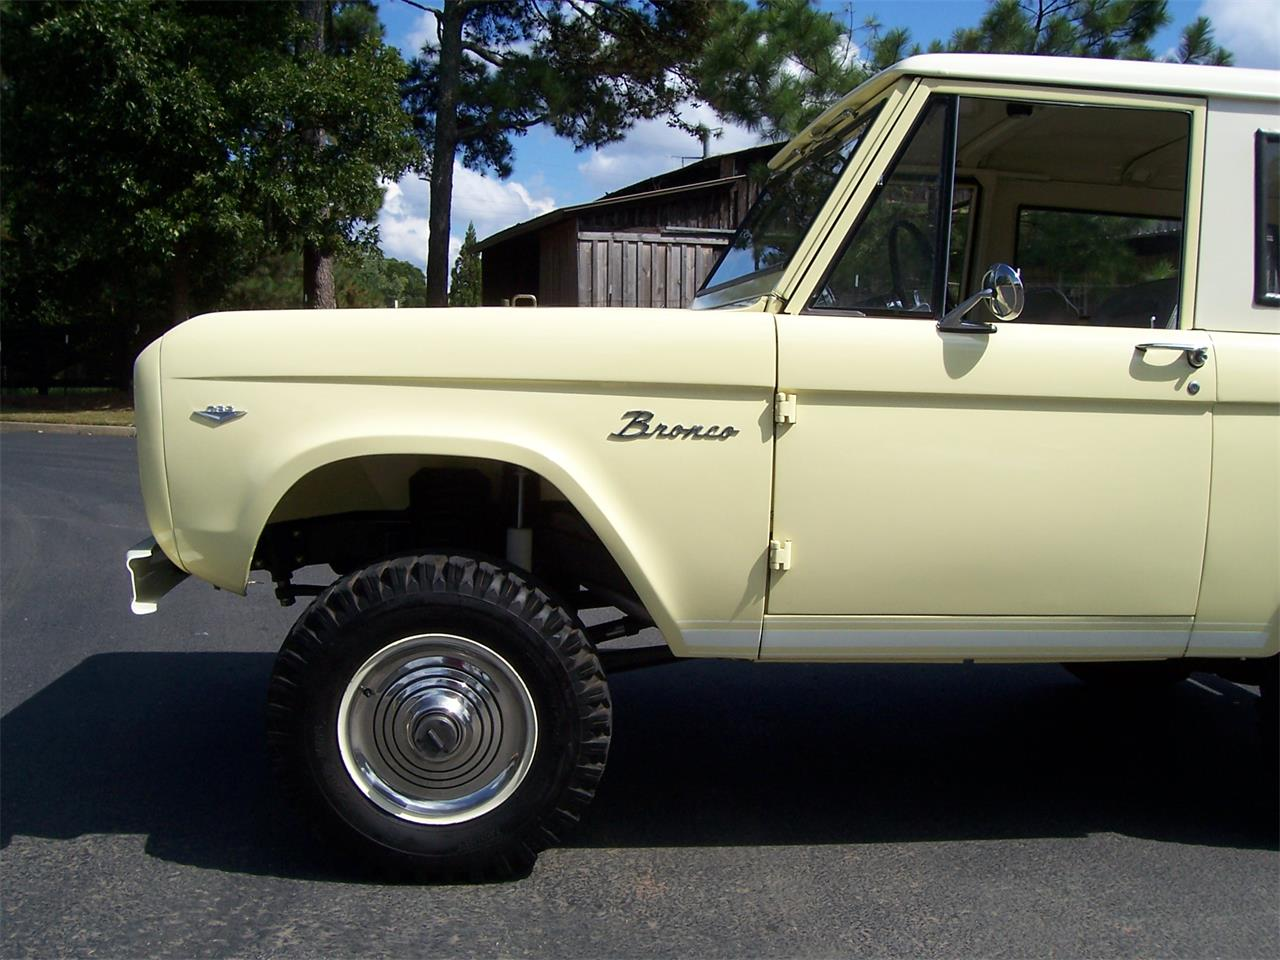 1966 Ford Bronco for sale in Alpharetta, GA – photo 17